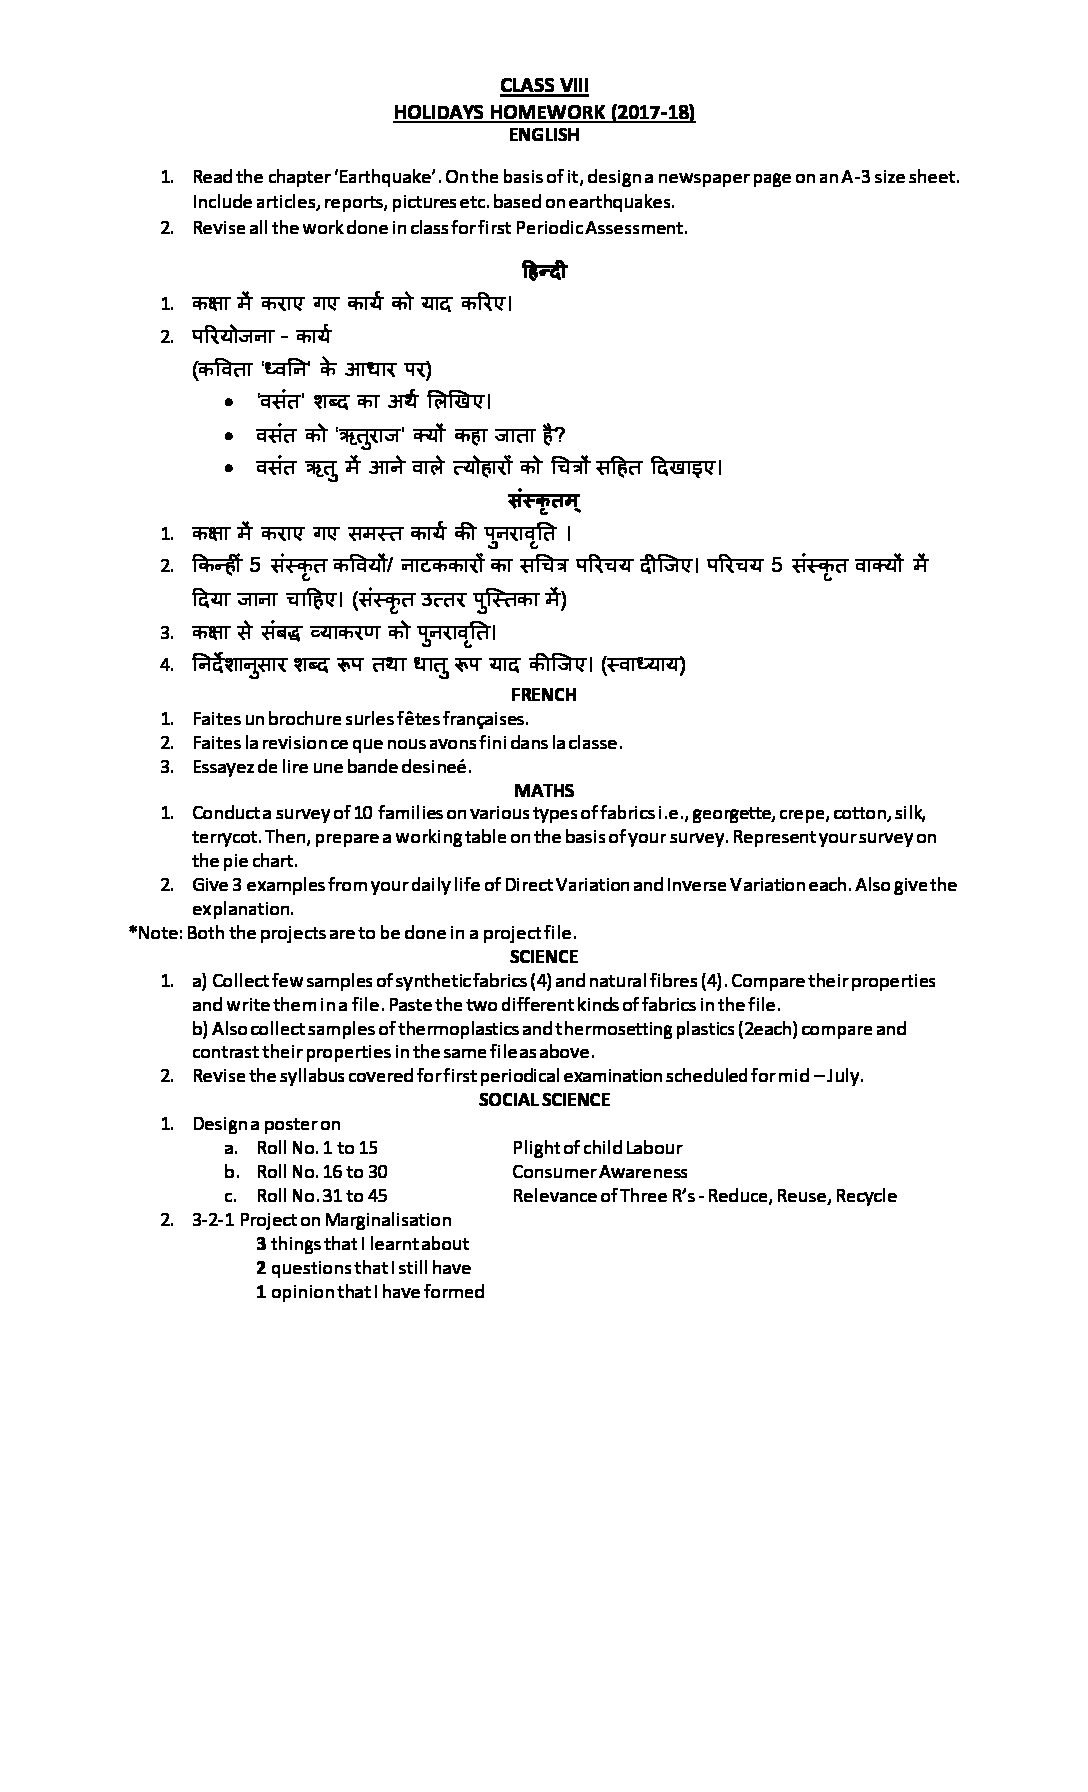 Essay On English Teacher Psya Schizophrenia Essays On The Great Computer Science Essays also Essay On Health Care Reform Plate Tectonics  Paragraph Essay Examples Of Thesis Statements For Expository Essays